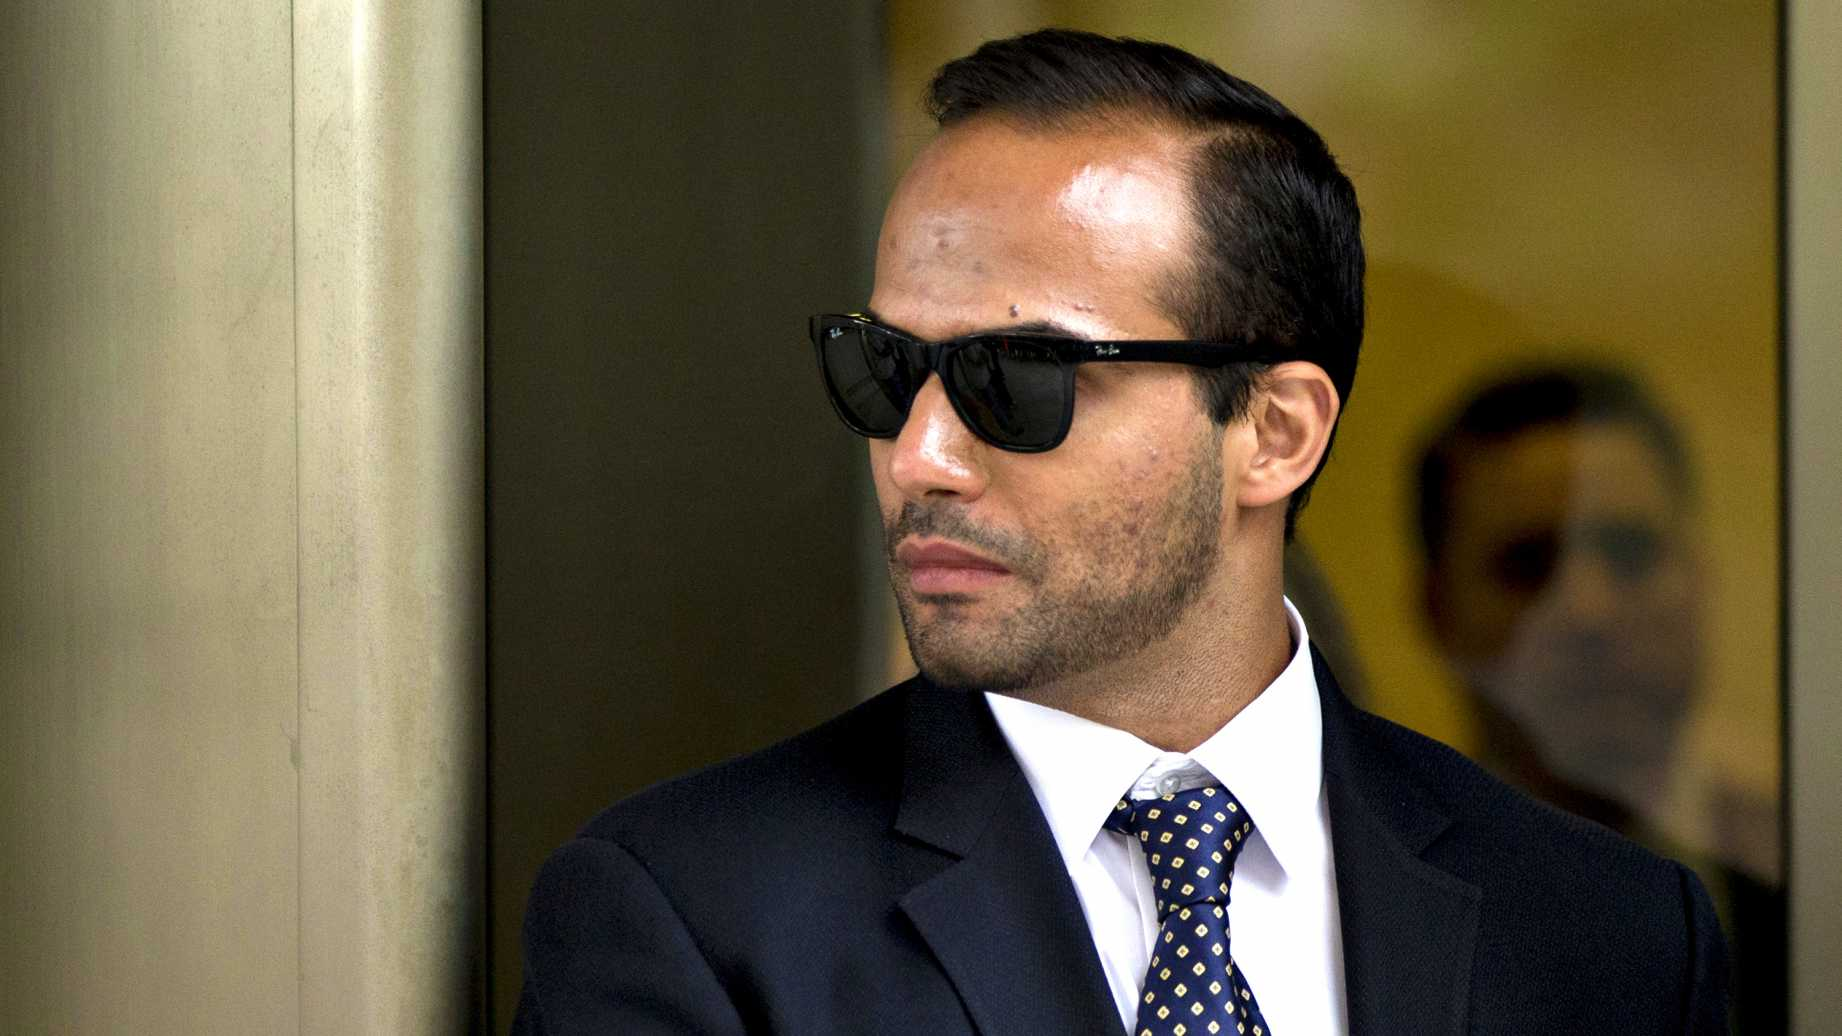 Papadopoulos Going To Greece To Retrieve Entrapment Payment From Alleged U.S. Intel Asset, He Says